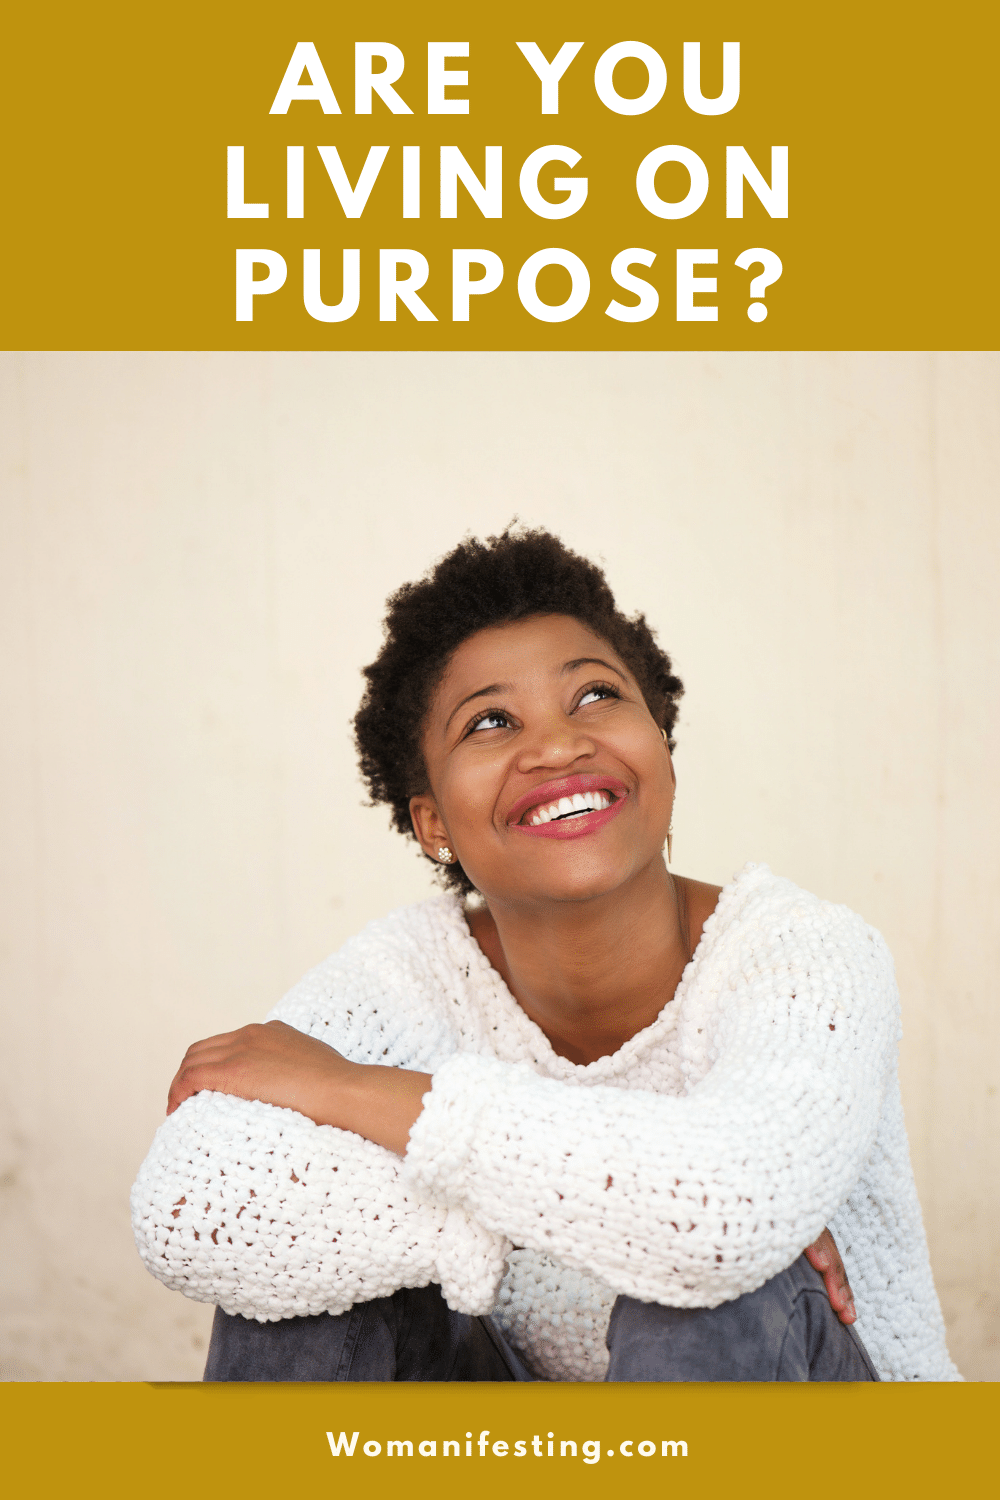 How Do You Know You Are Living on Purpose? [Video]